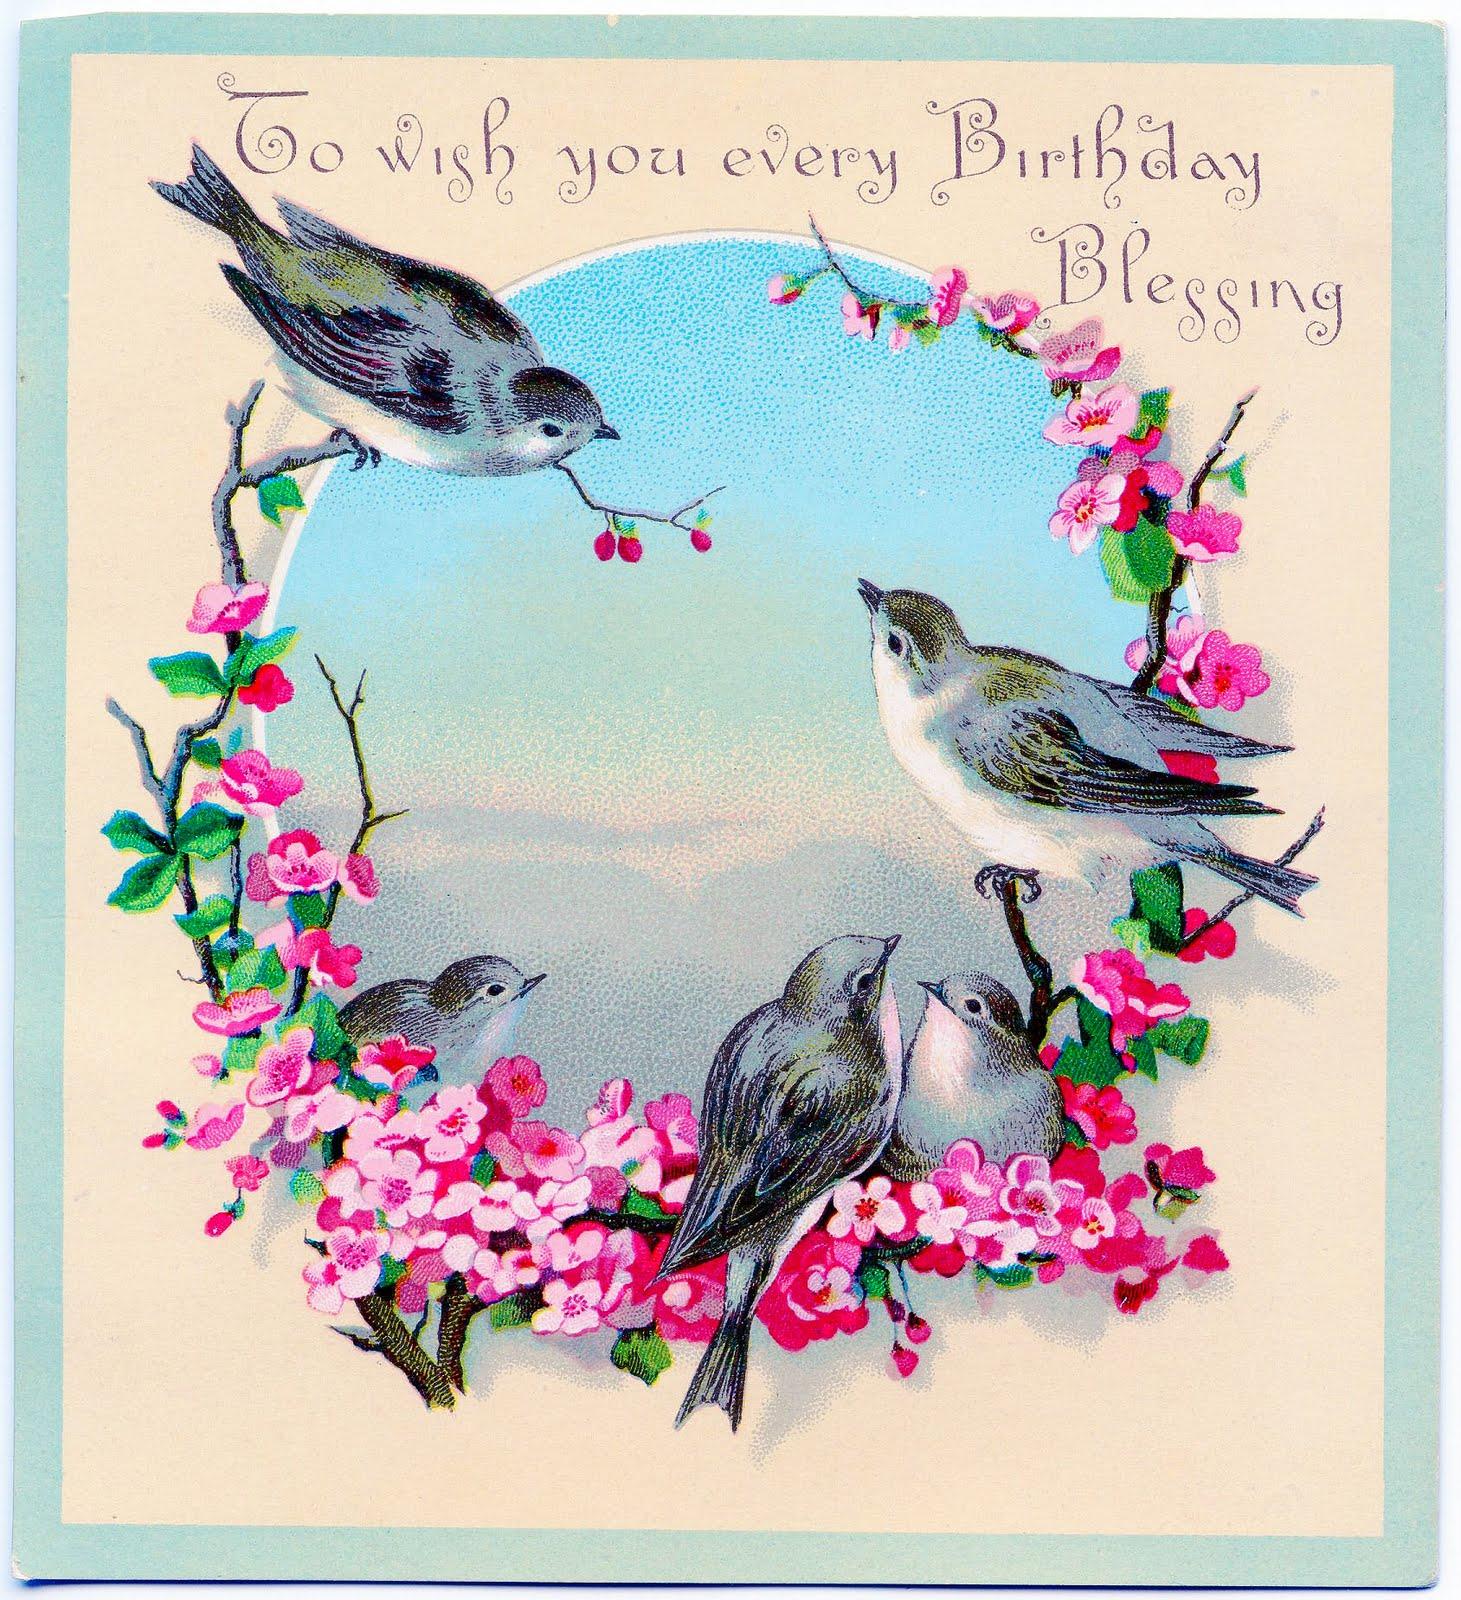 Sweet Birds With Flowers   Birthday Greeting   The Graphics Fairy